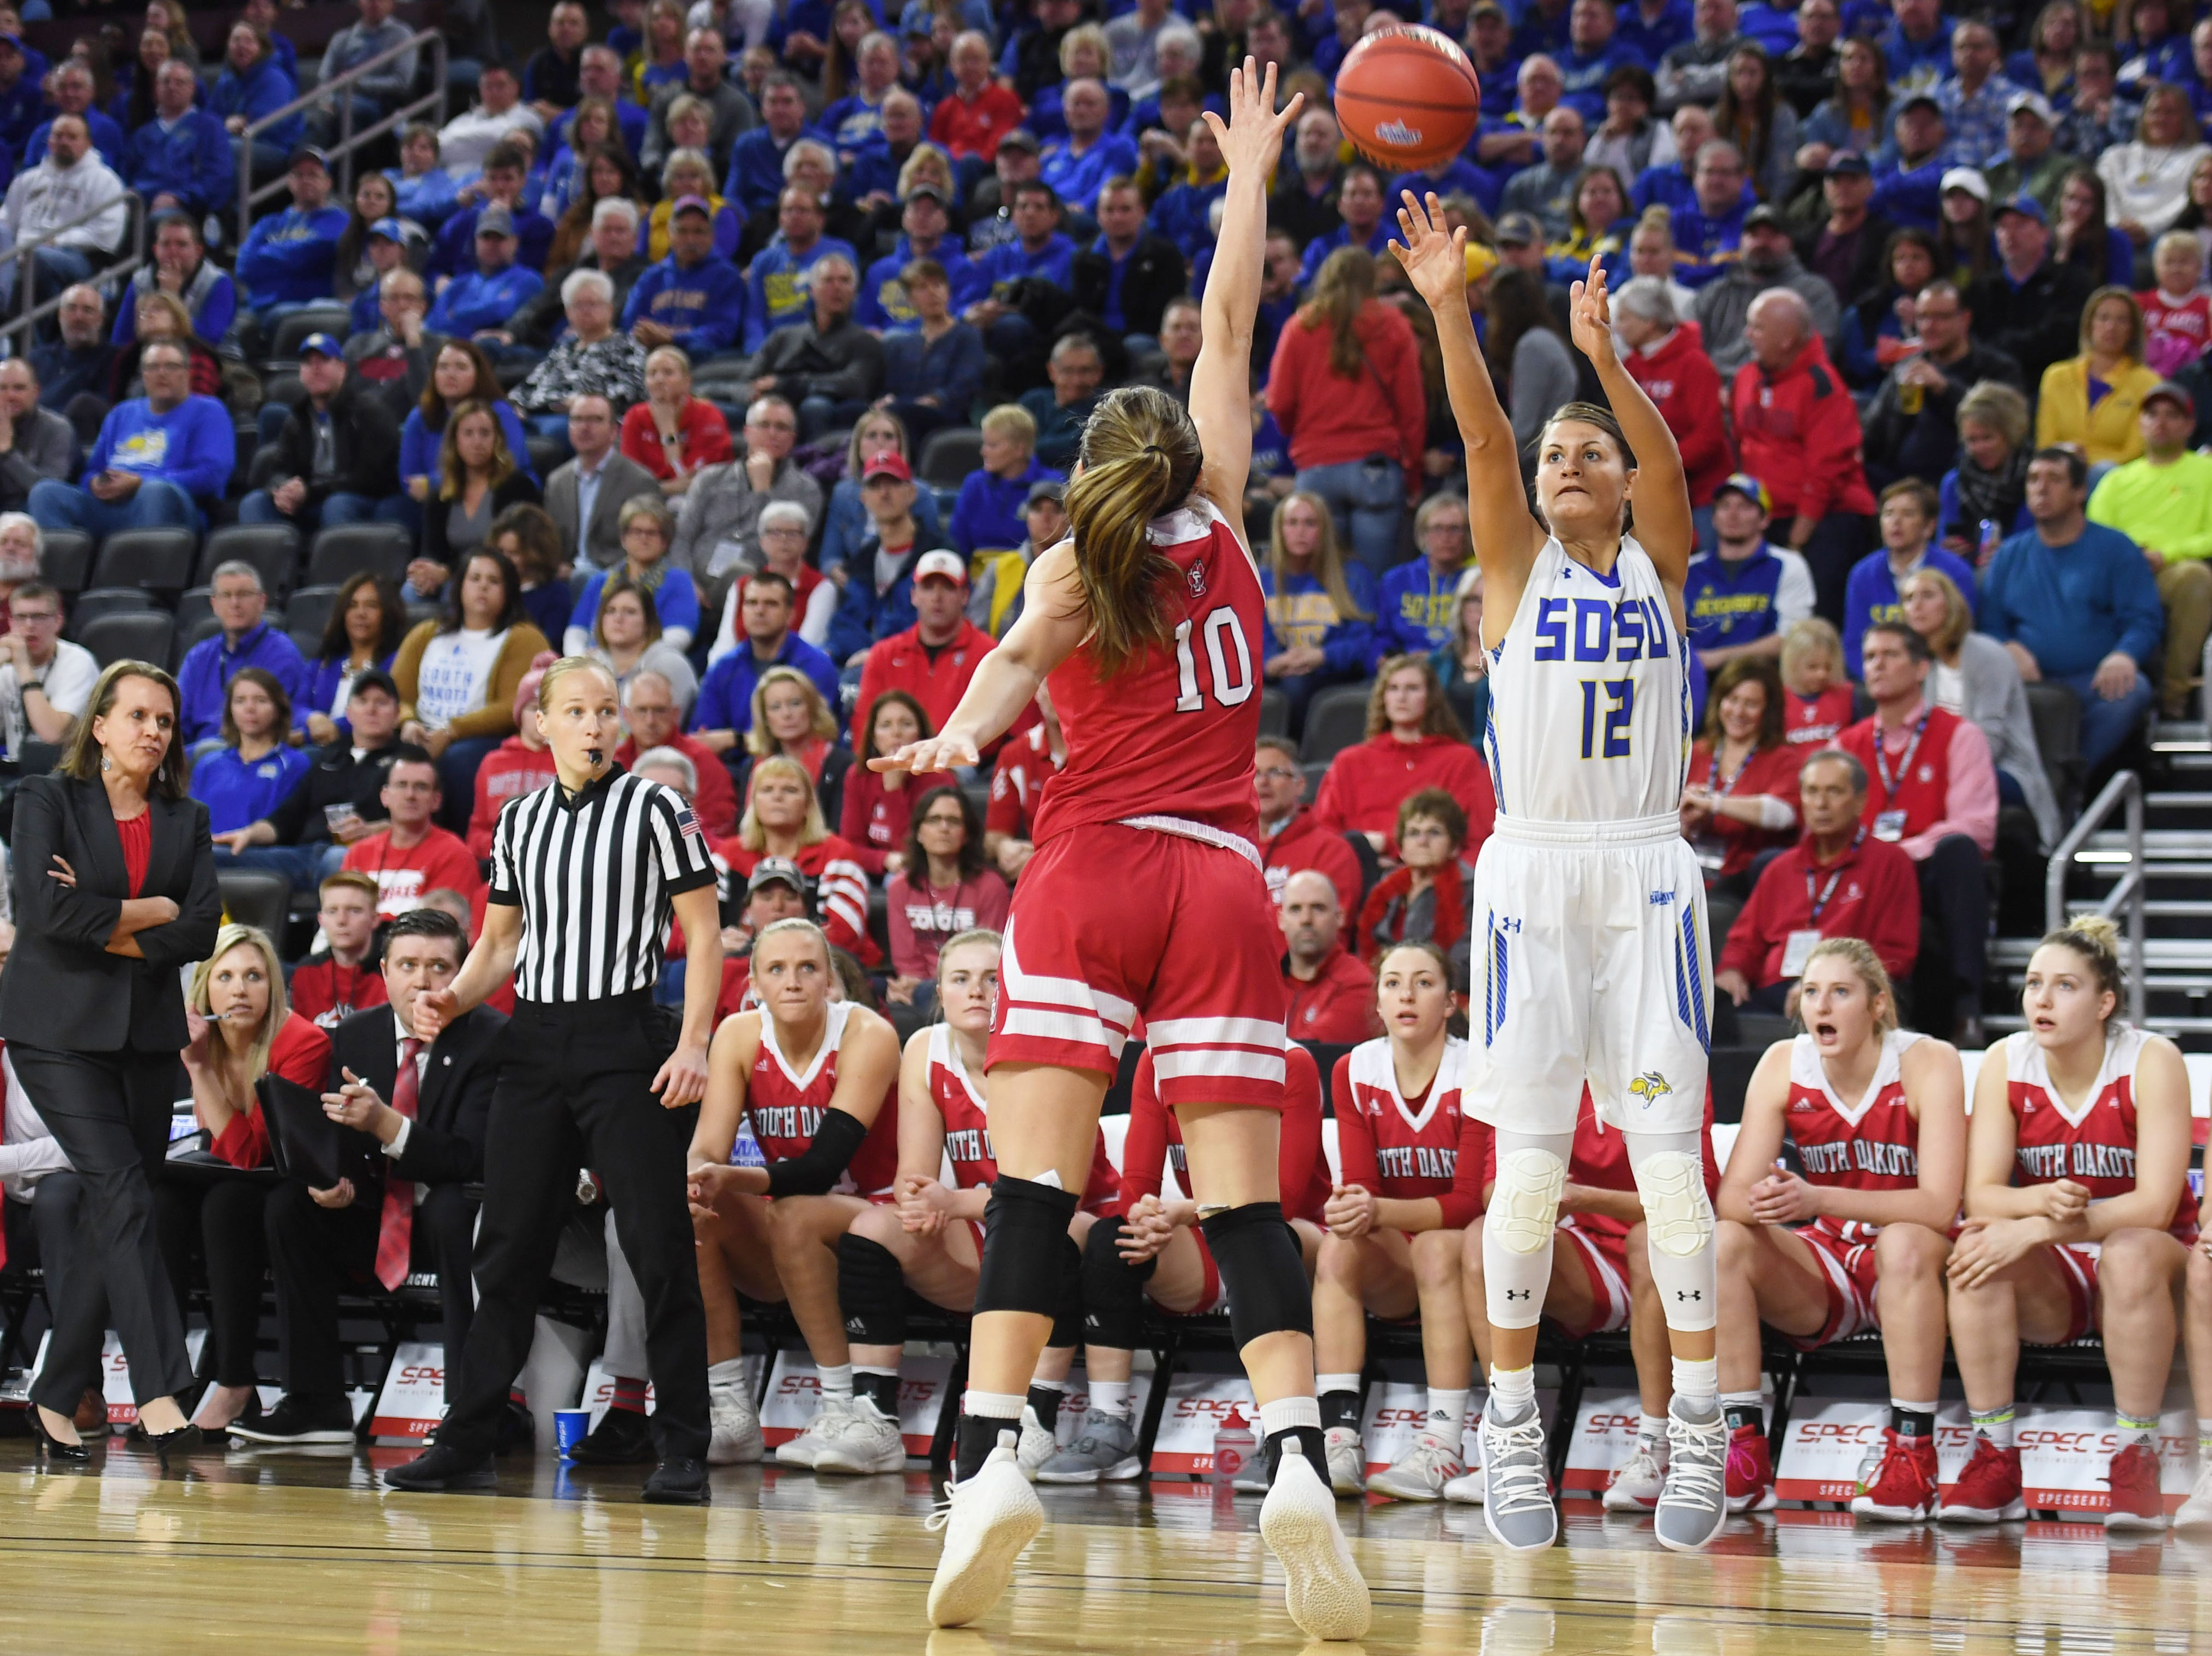 SDSU's Macy Miller takes a shot against USD's Allison Arens during the game Tuesday, March 12, in the Summit League women's championship at the Denny Sanford Premier Center in Sioux Falls.